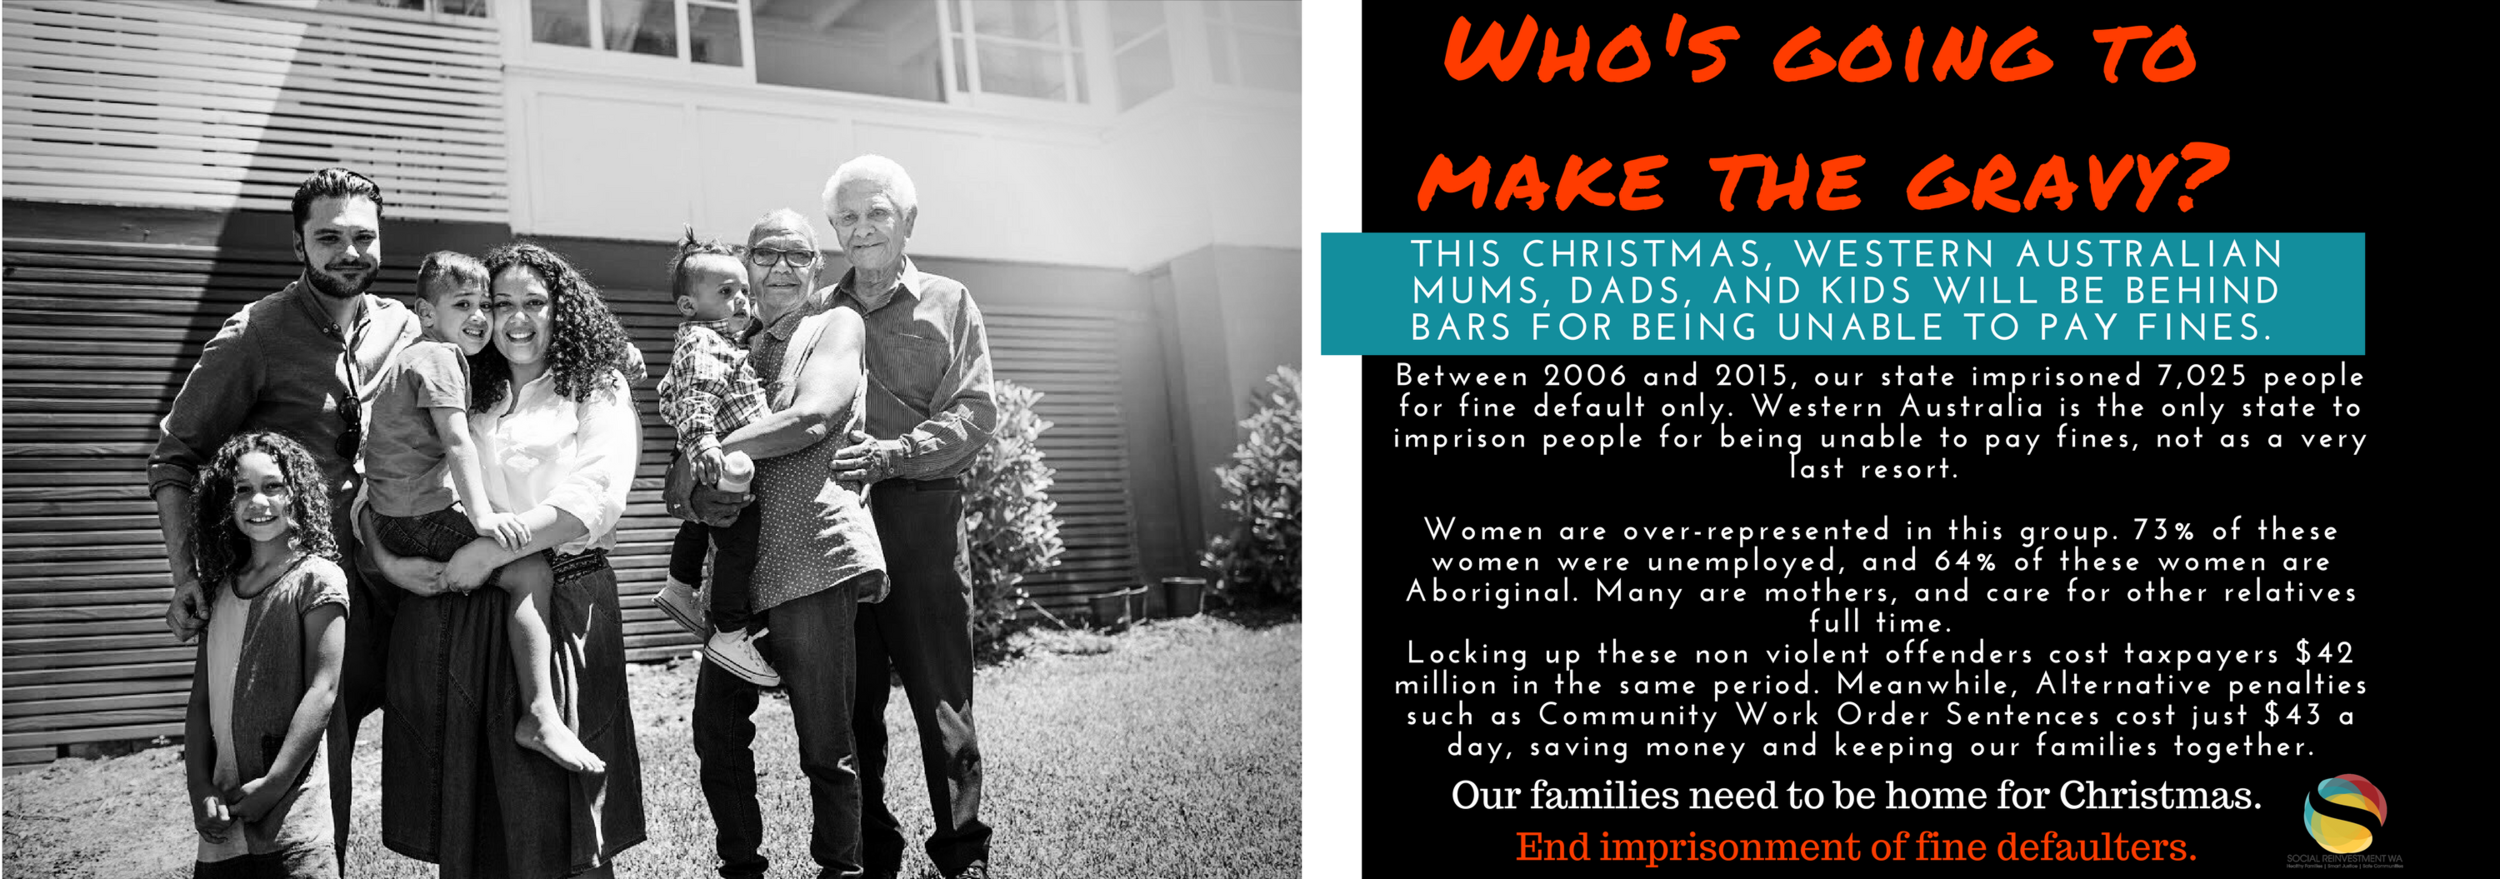 Join our Campaign to End Imprisonment of vulnerable Western Australians for unpaid fines. -